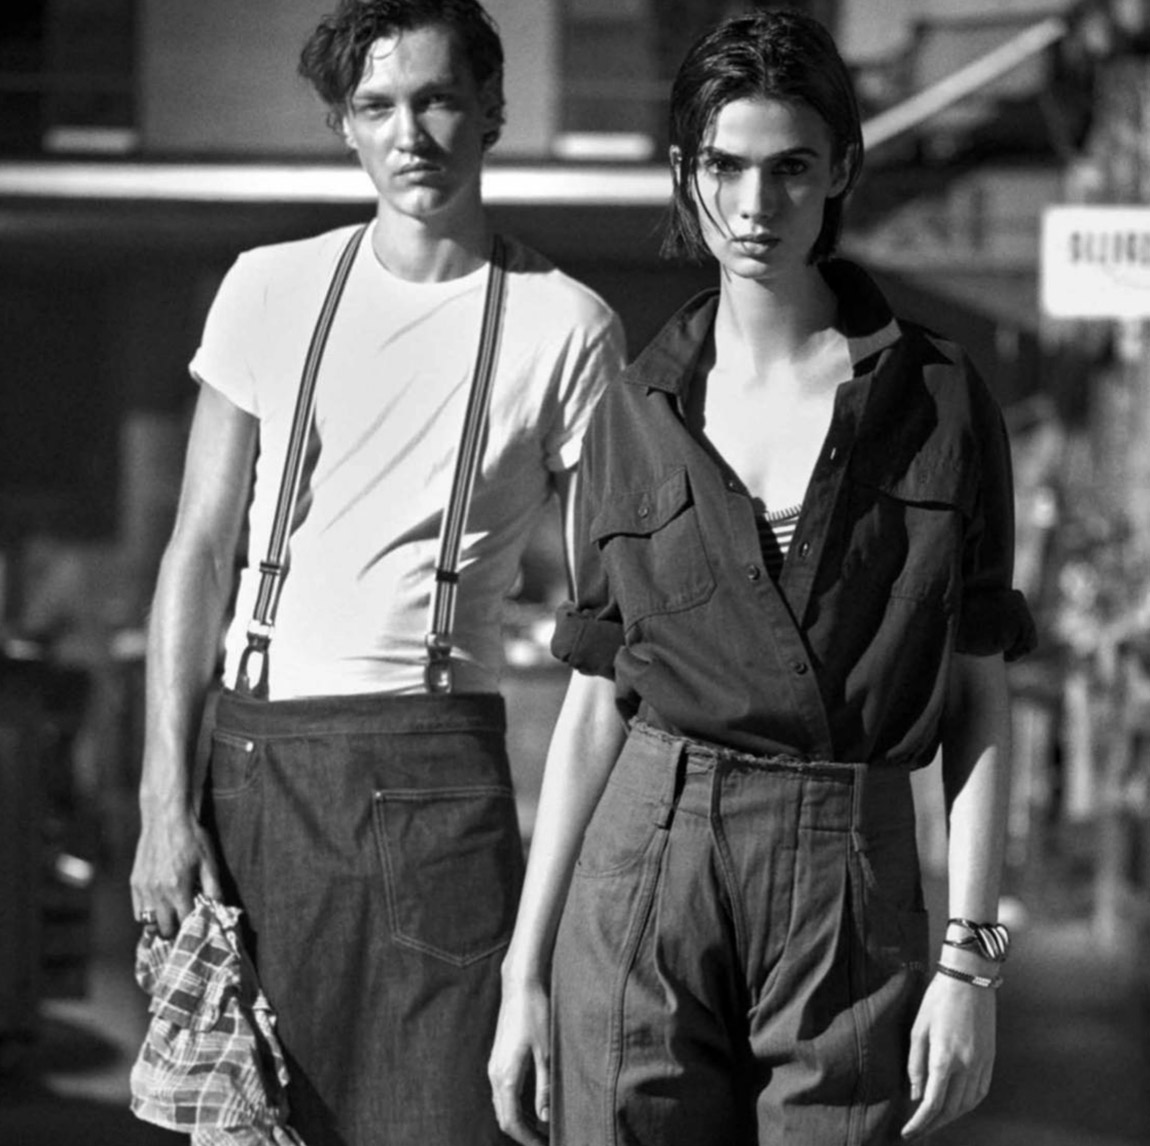 Vitoria Mota and Swann Guerrault by Lise-Anne Marsal for Madame Figaro March 5th, 2021